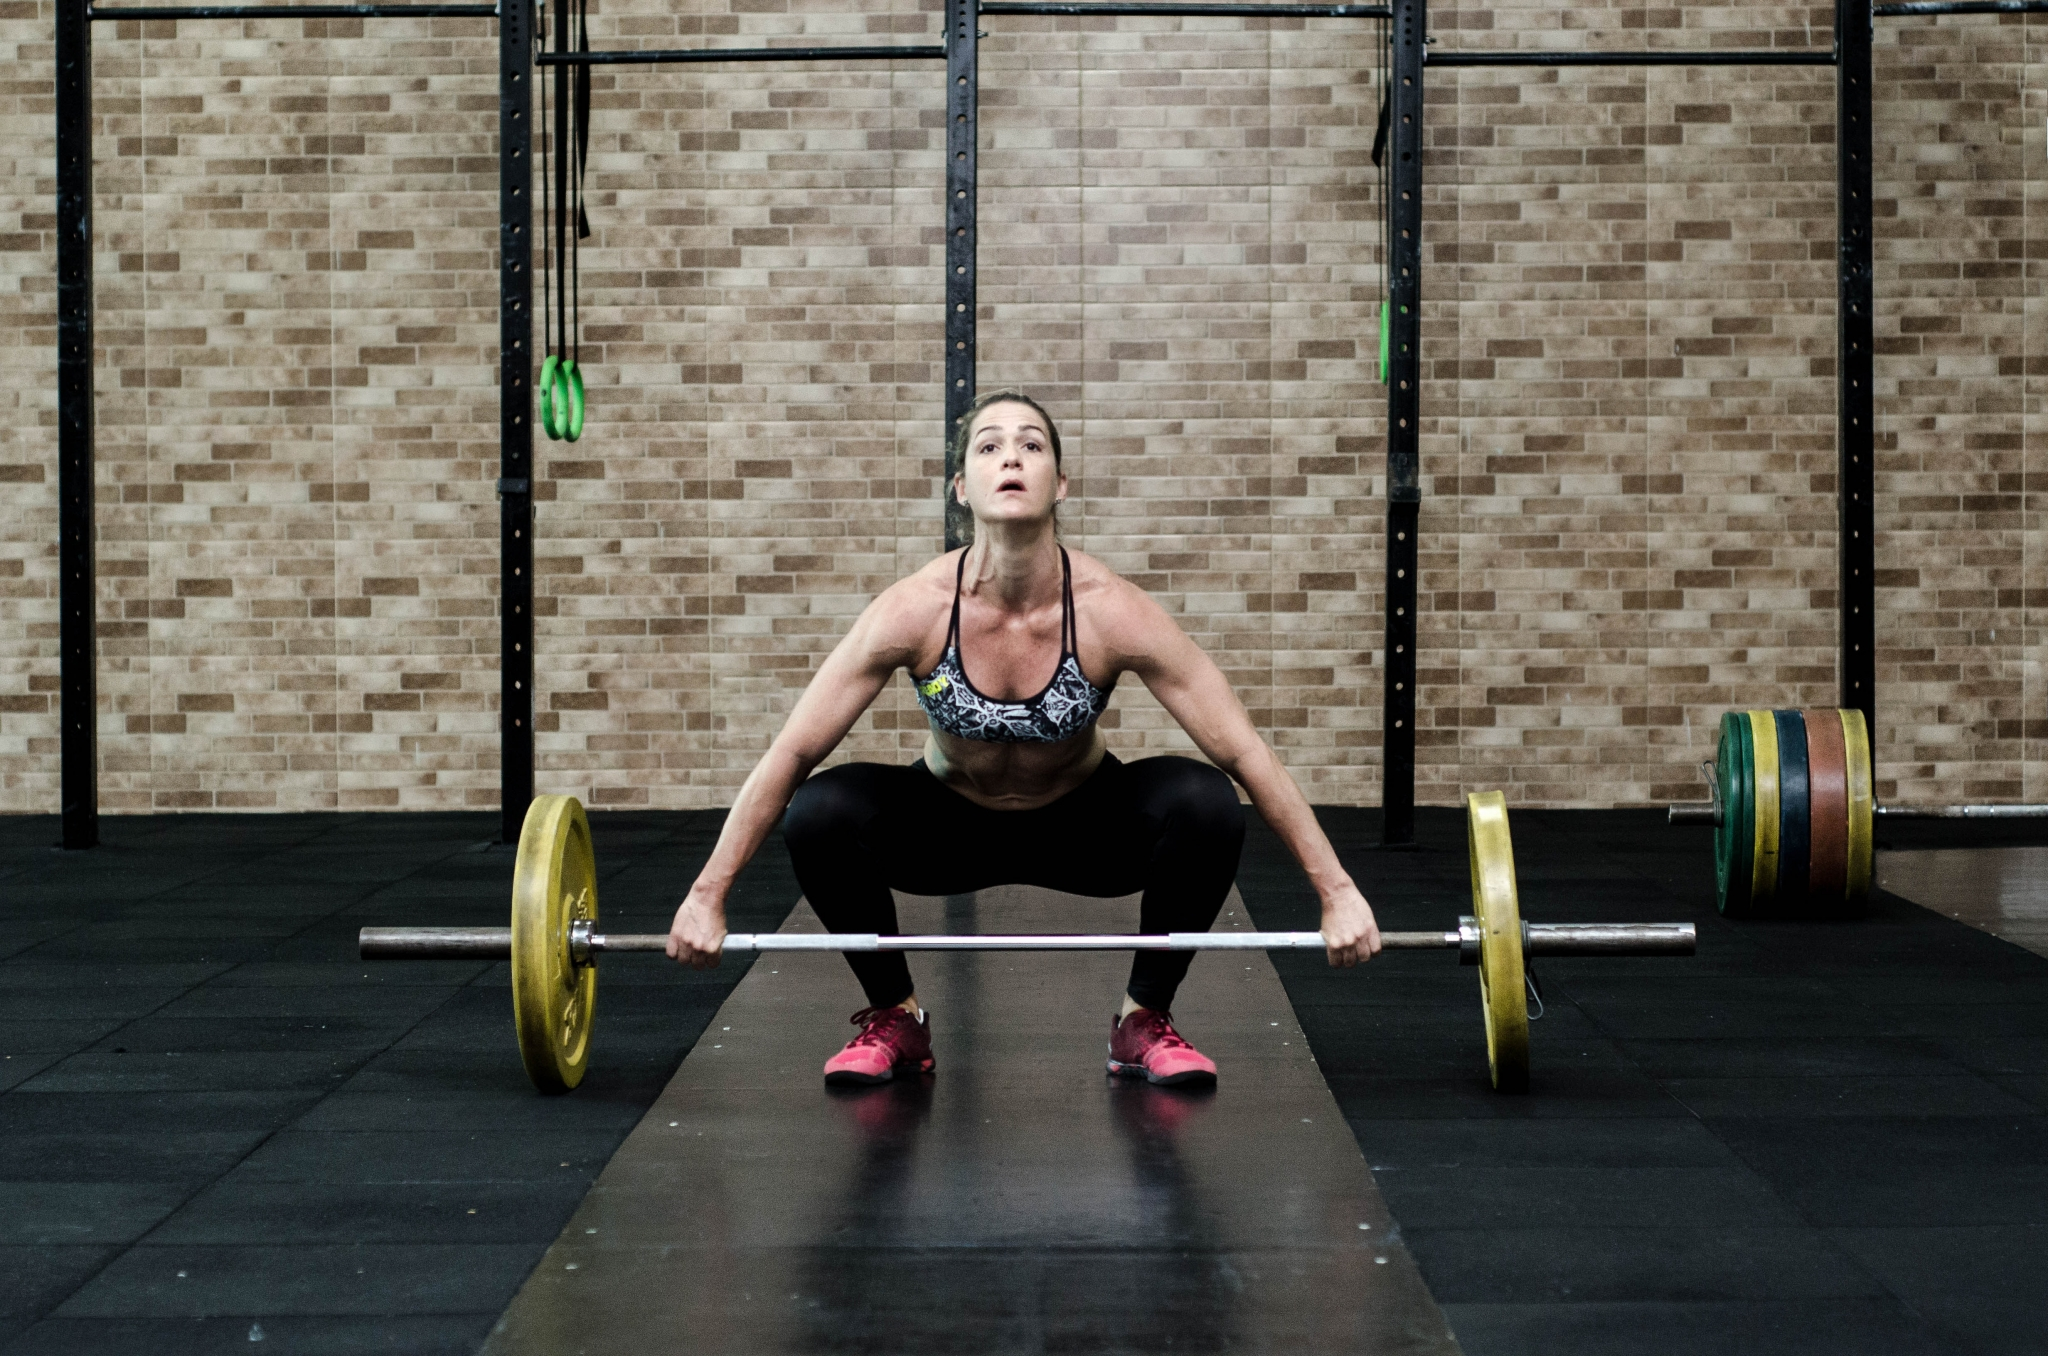 Weight training / image source: Isabella Mendez / pexels.com